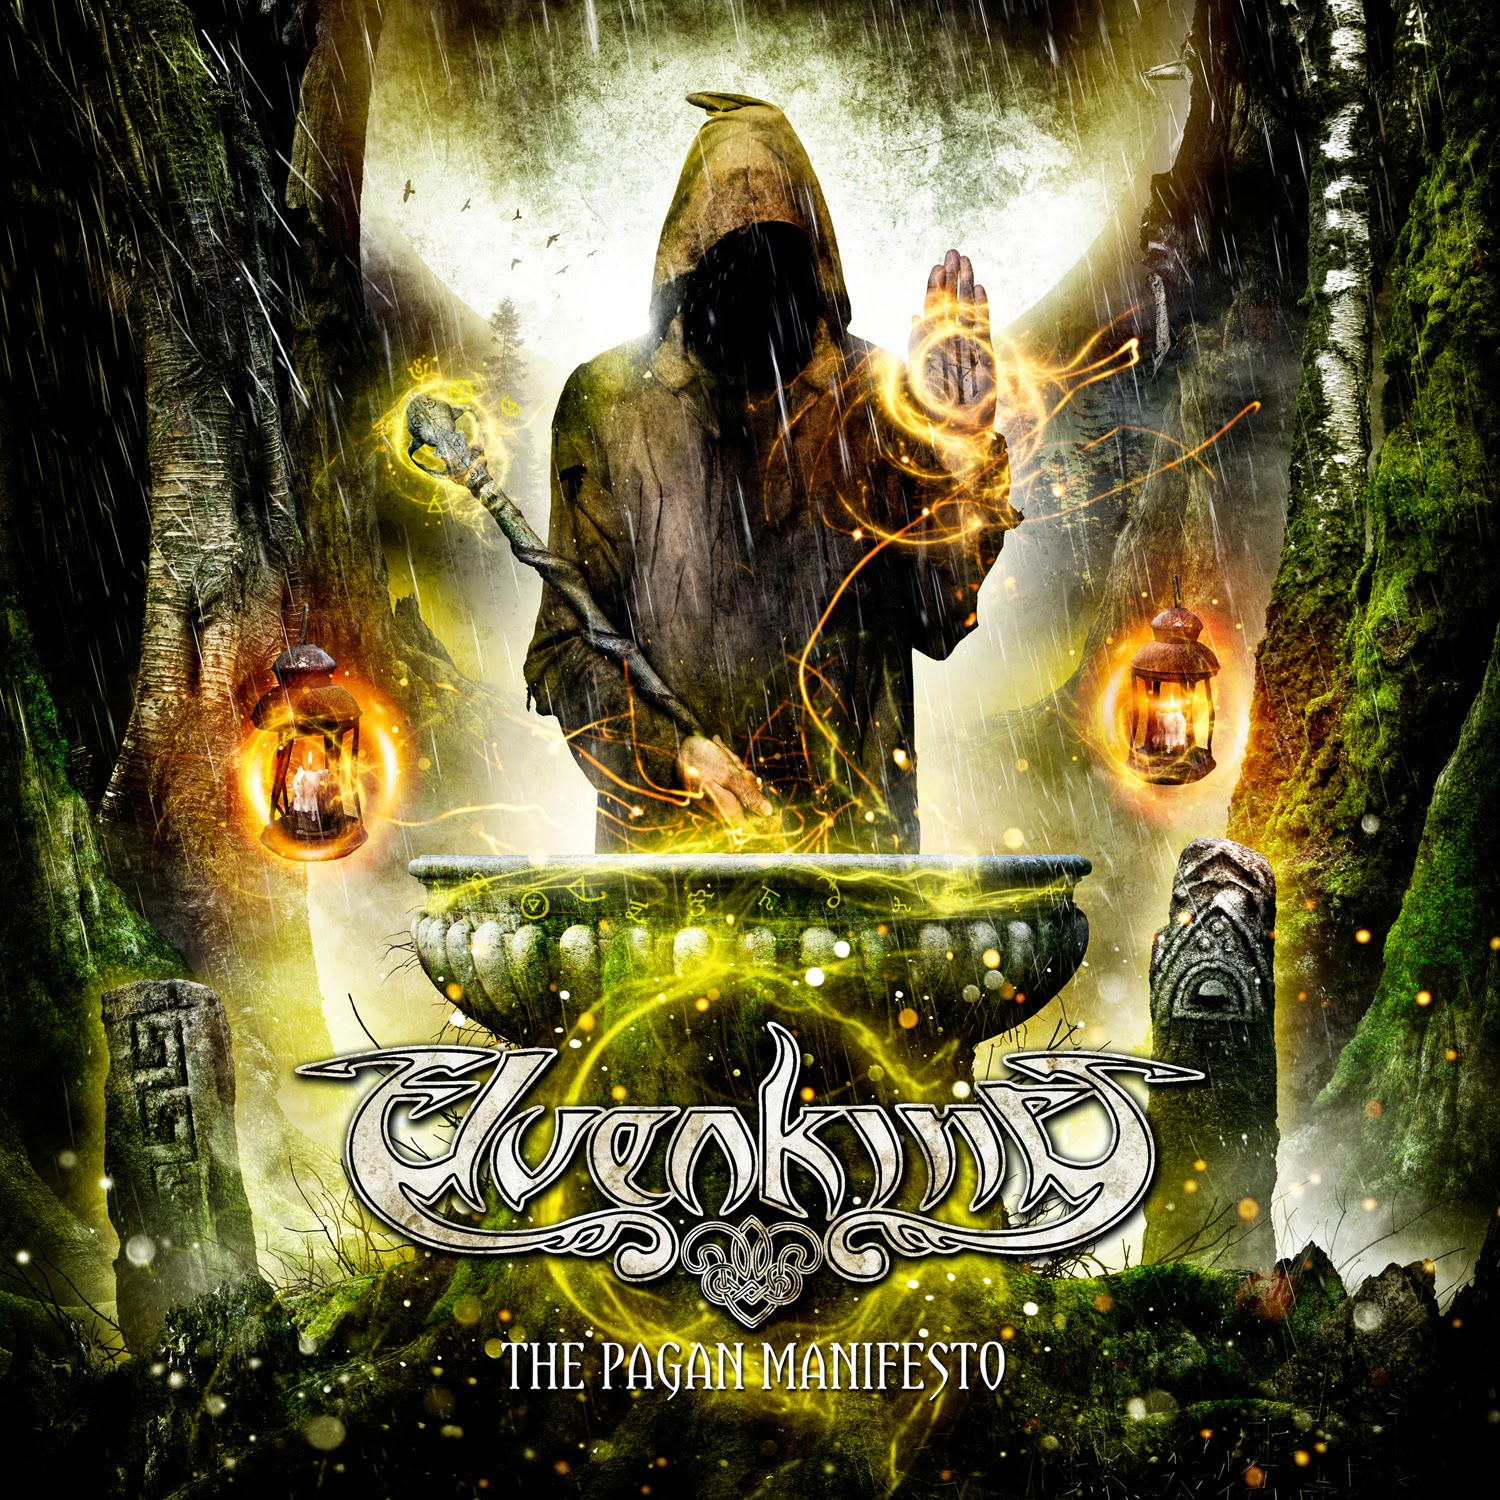 ELVENKING – The Pagan Manifesto (2014)